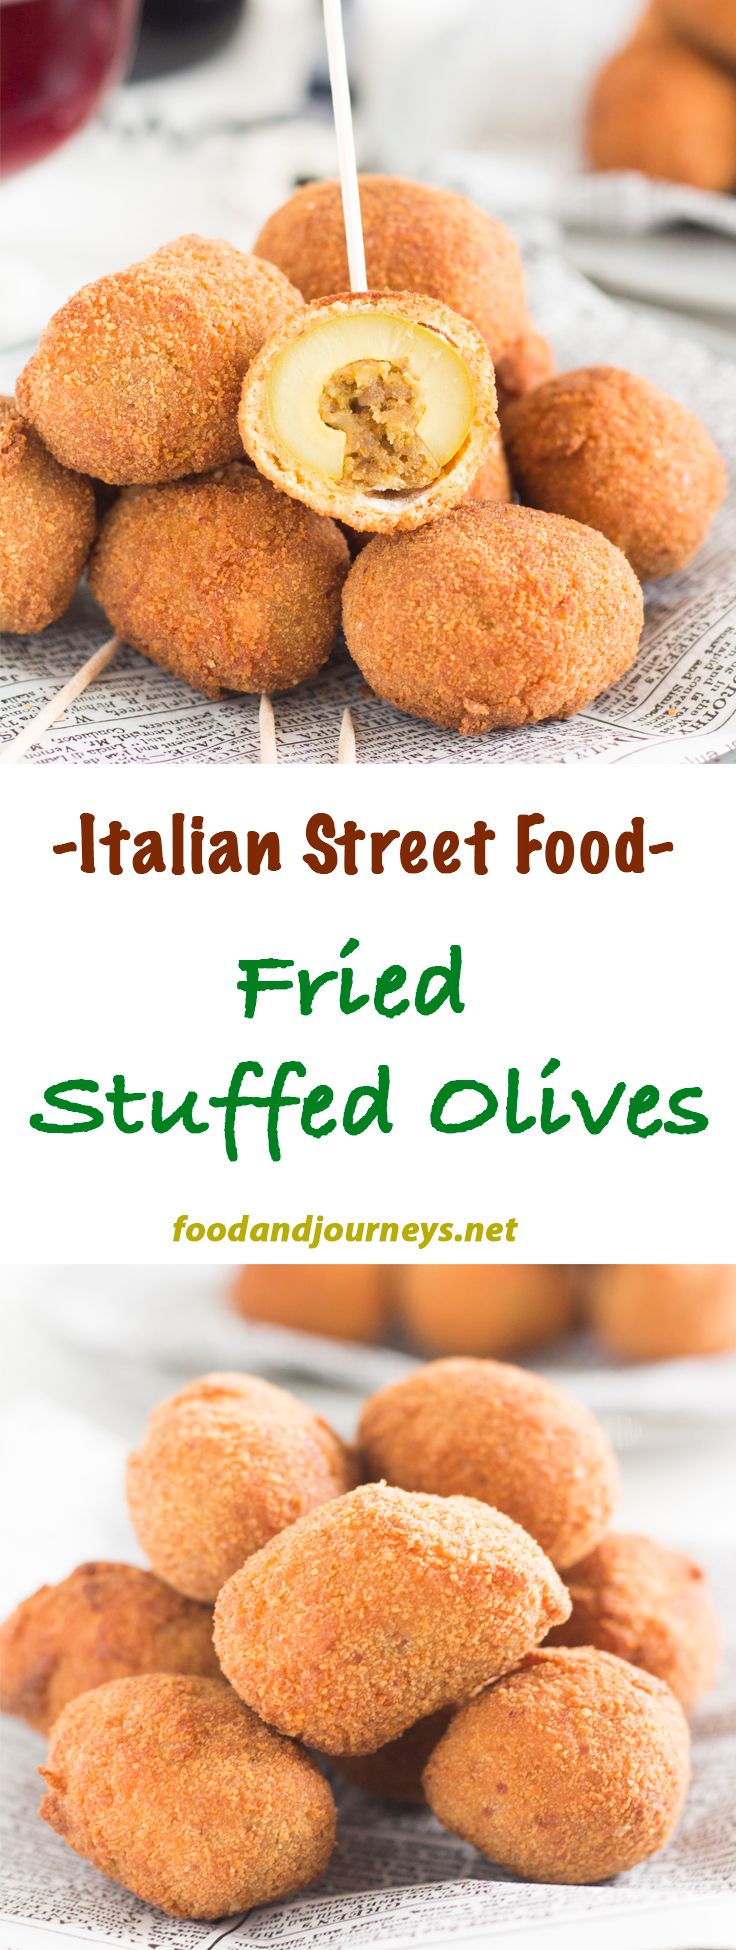 Italian   Street Food   Appetizer   Snack   Fried Olives. A popular street food from Marche, a region in central Italy. These green olives stuffed with minced meat are also great as an appetizer or snack. Best served HOT!